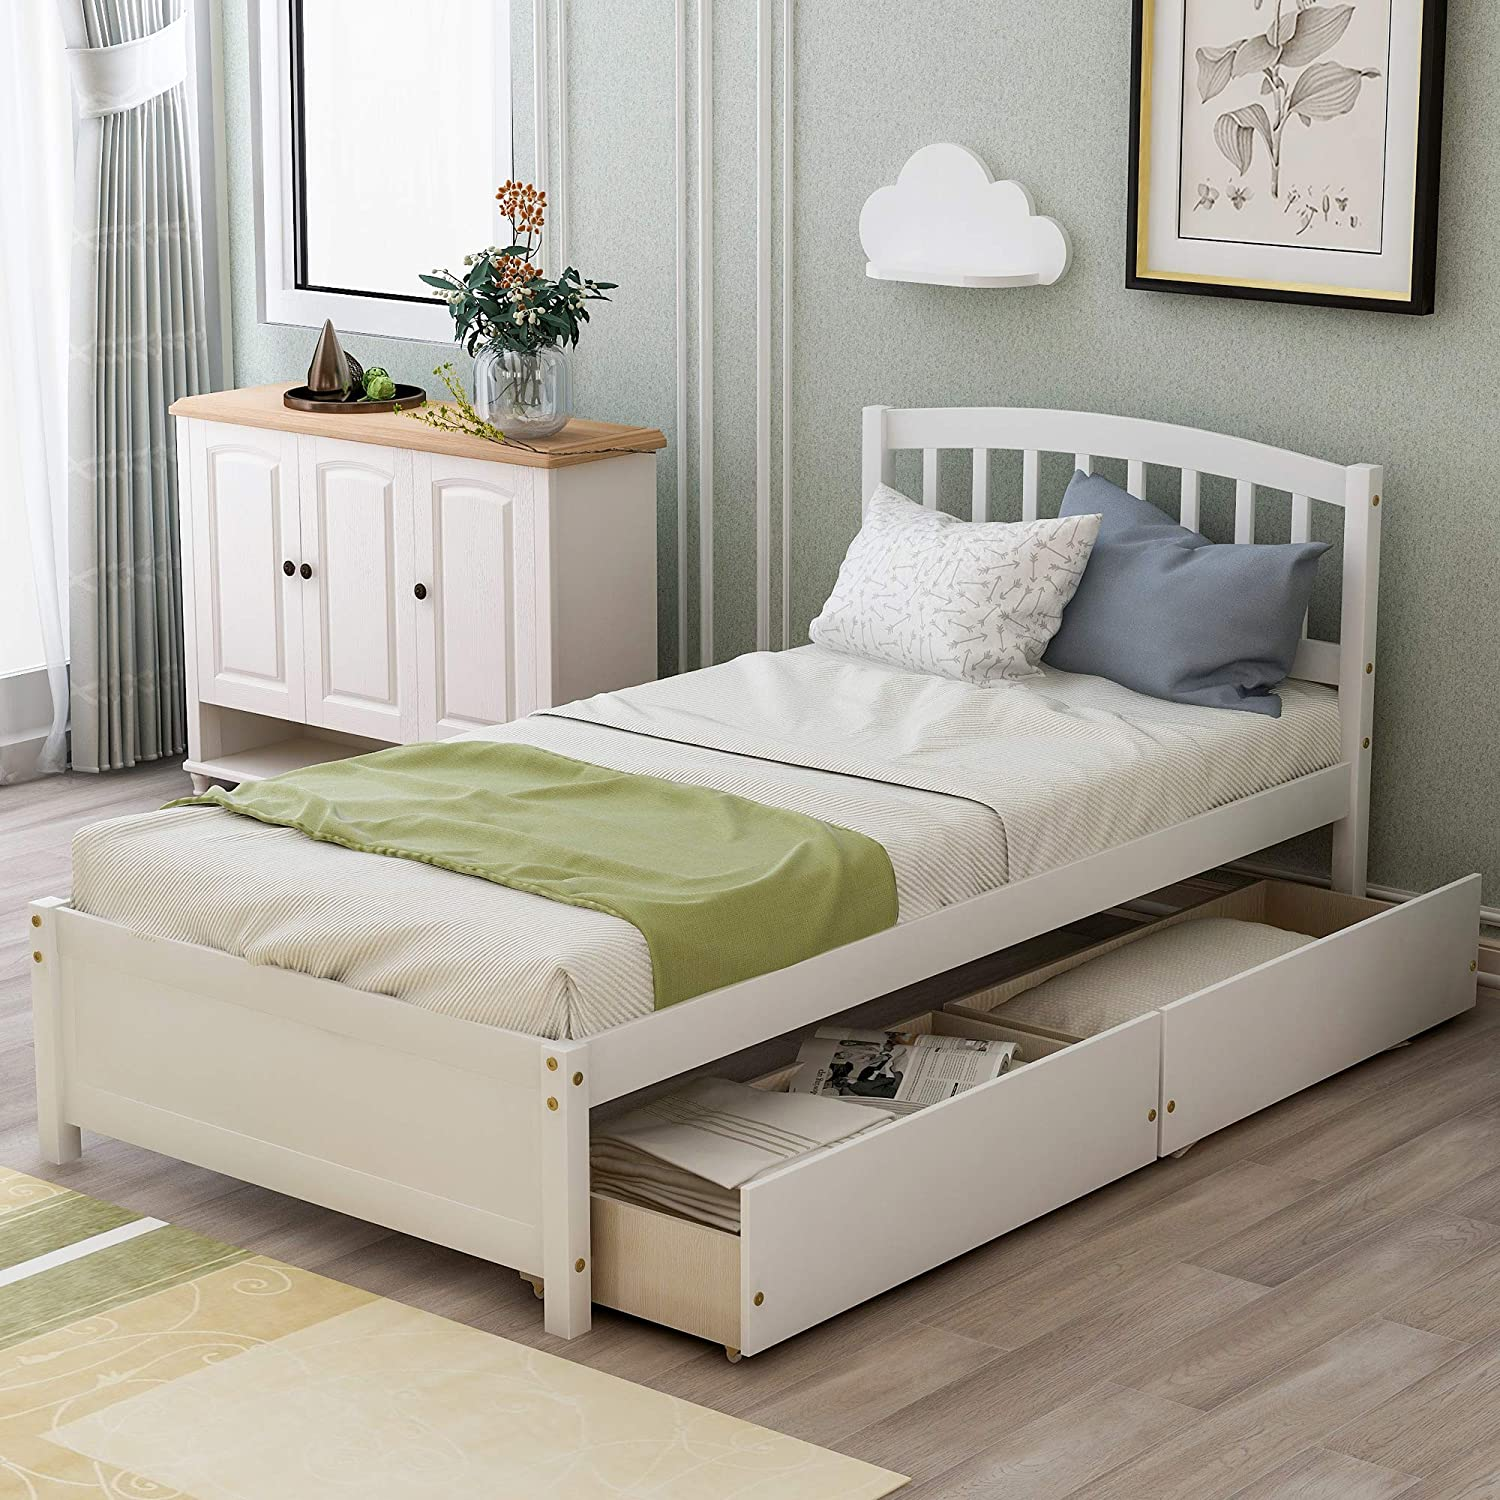 Merax Solid Wood Twin Size Free Shipping New Platform Bed Two Wooden Drawers with Albuquerque Mall